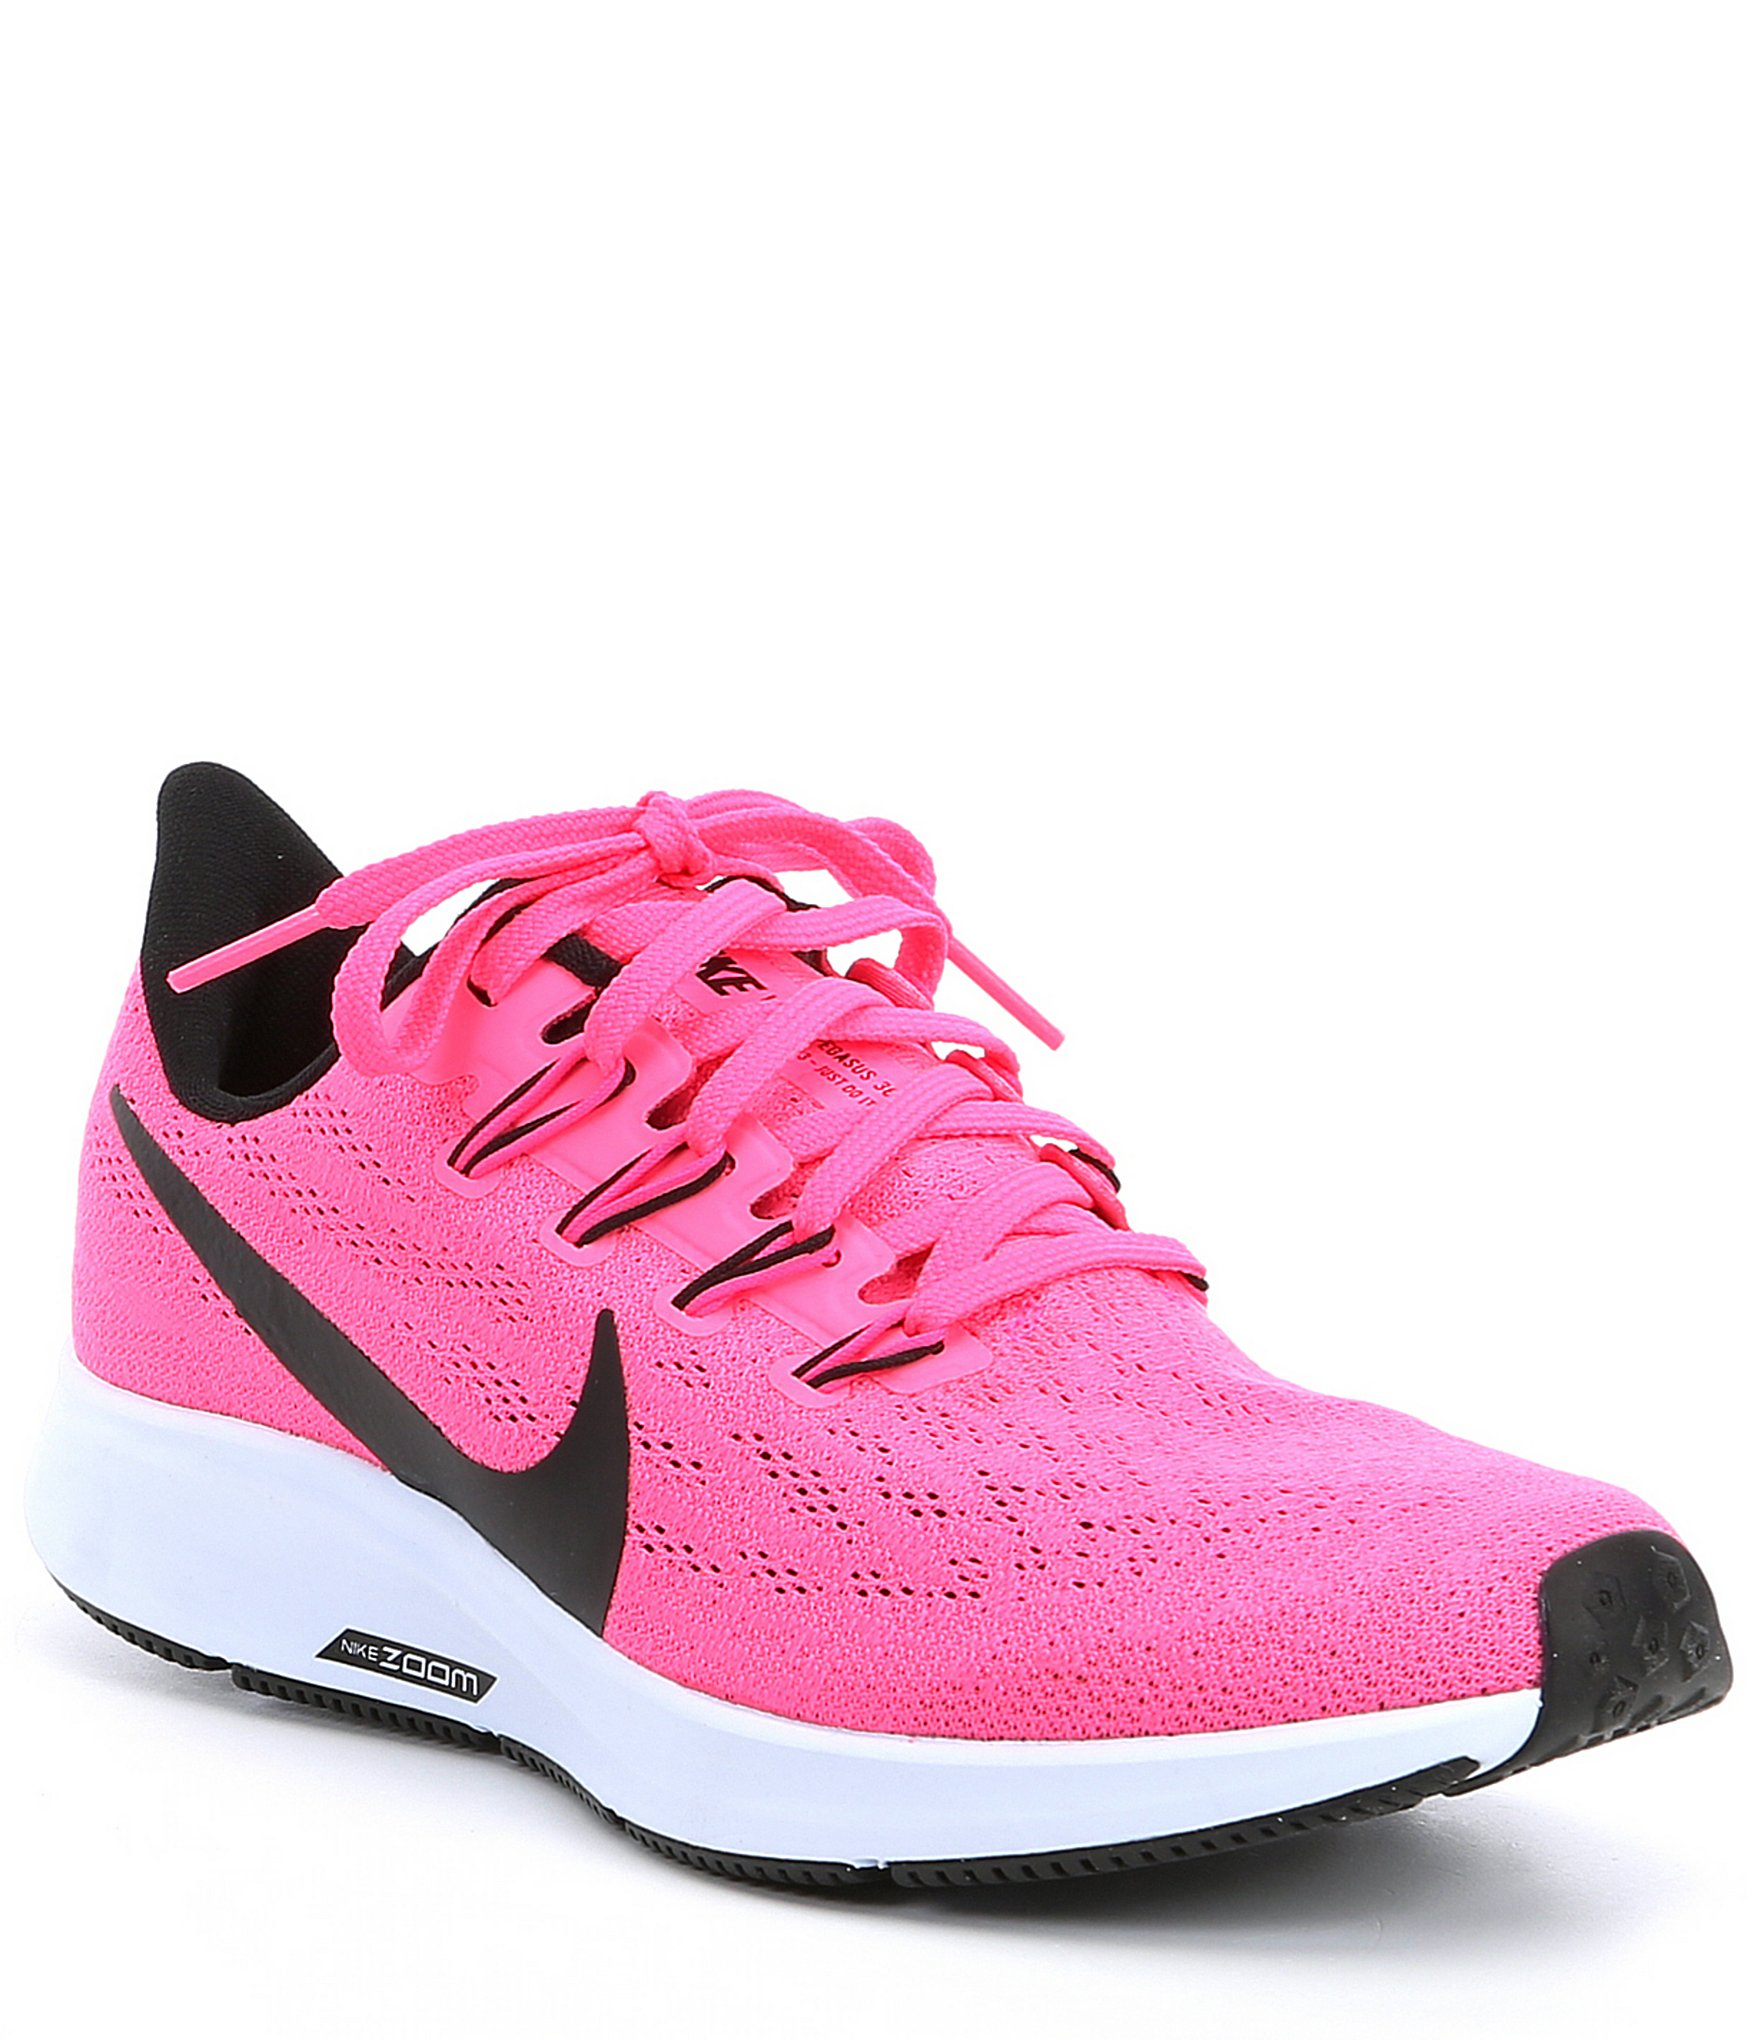 nike shoes pink